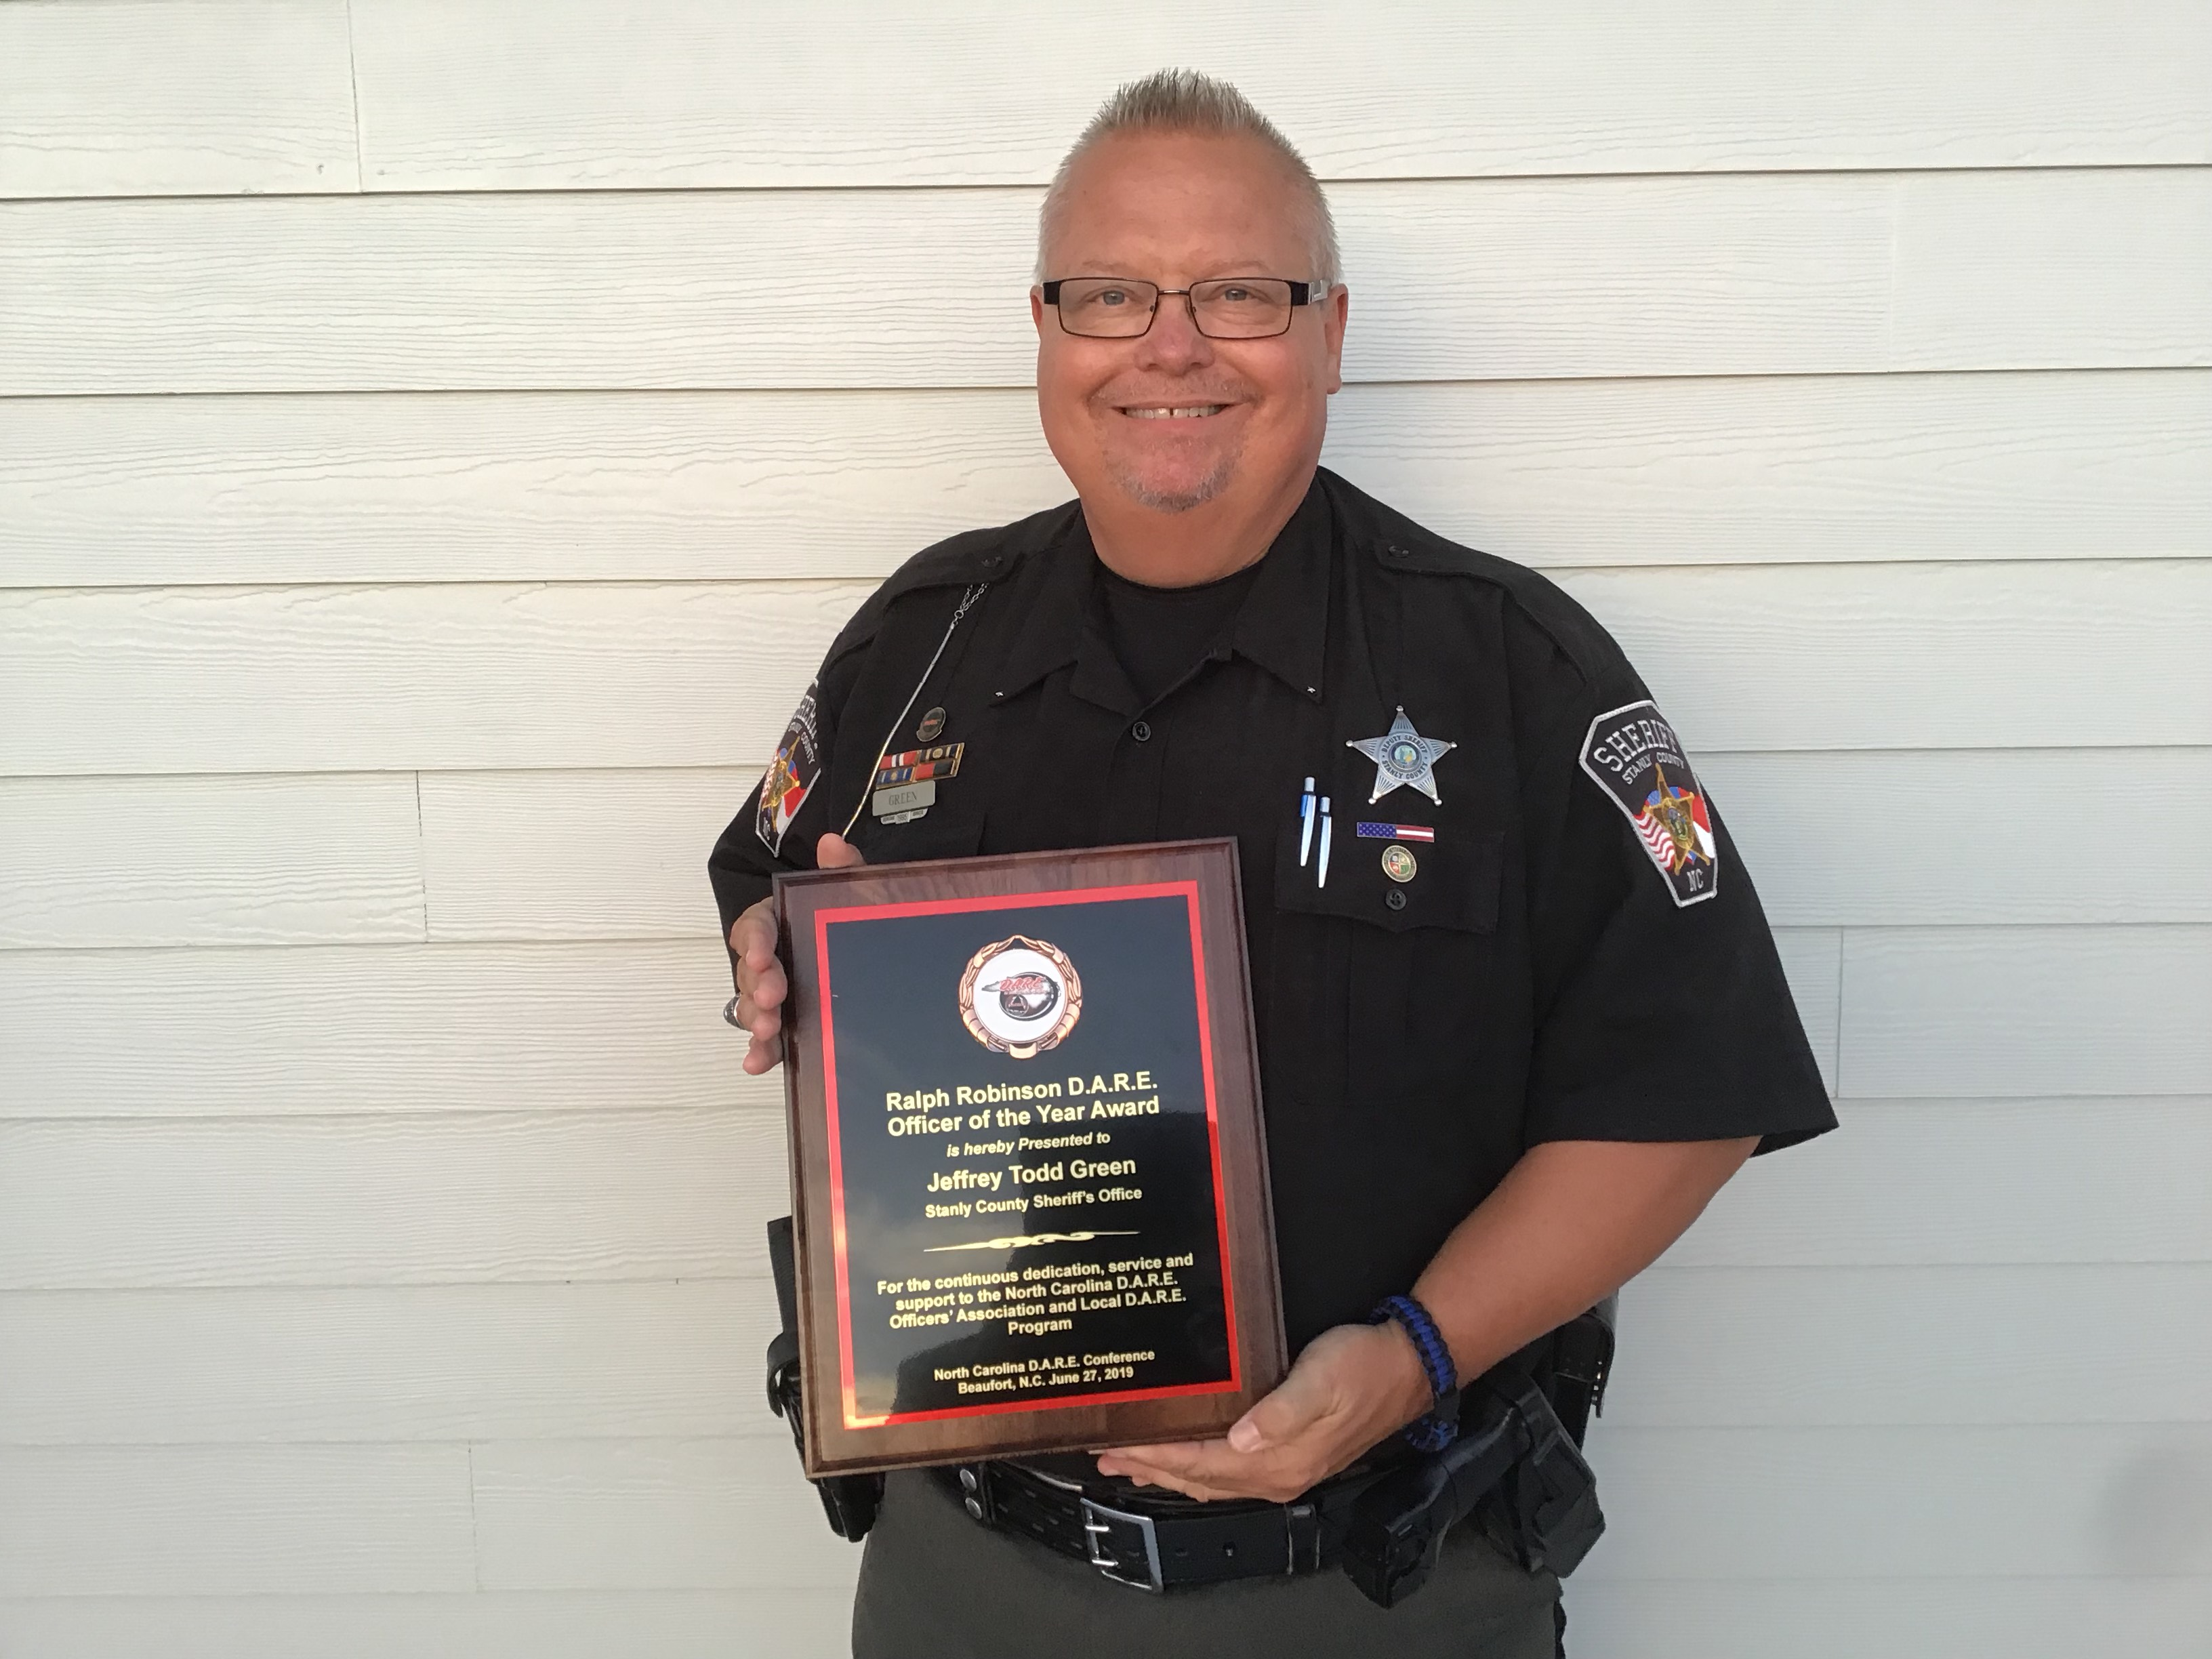 Todd Green, North Carolina D.A.R.E. Officer of the Year 2019